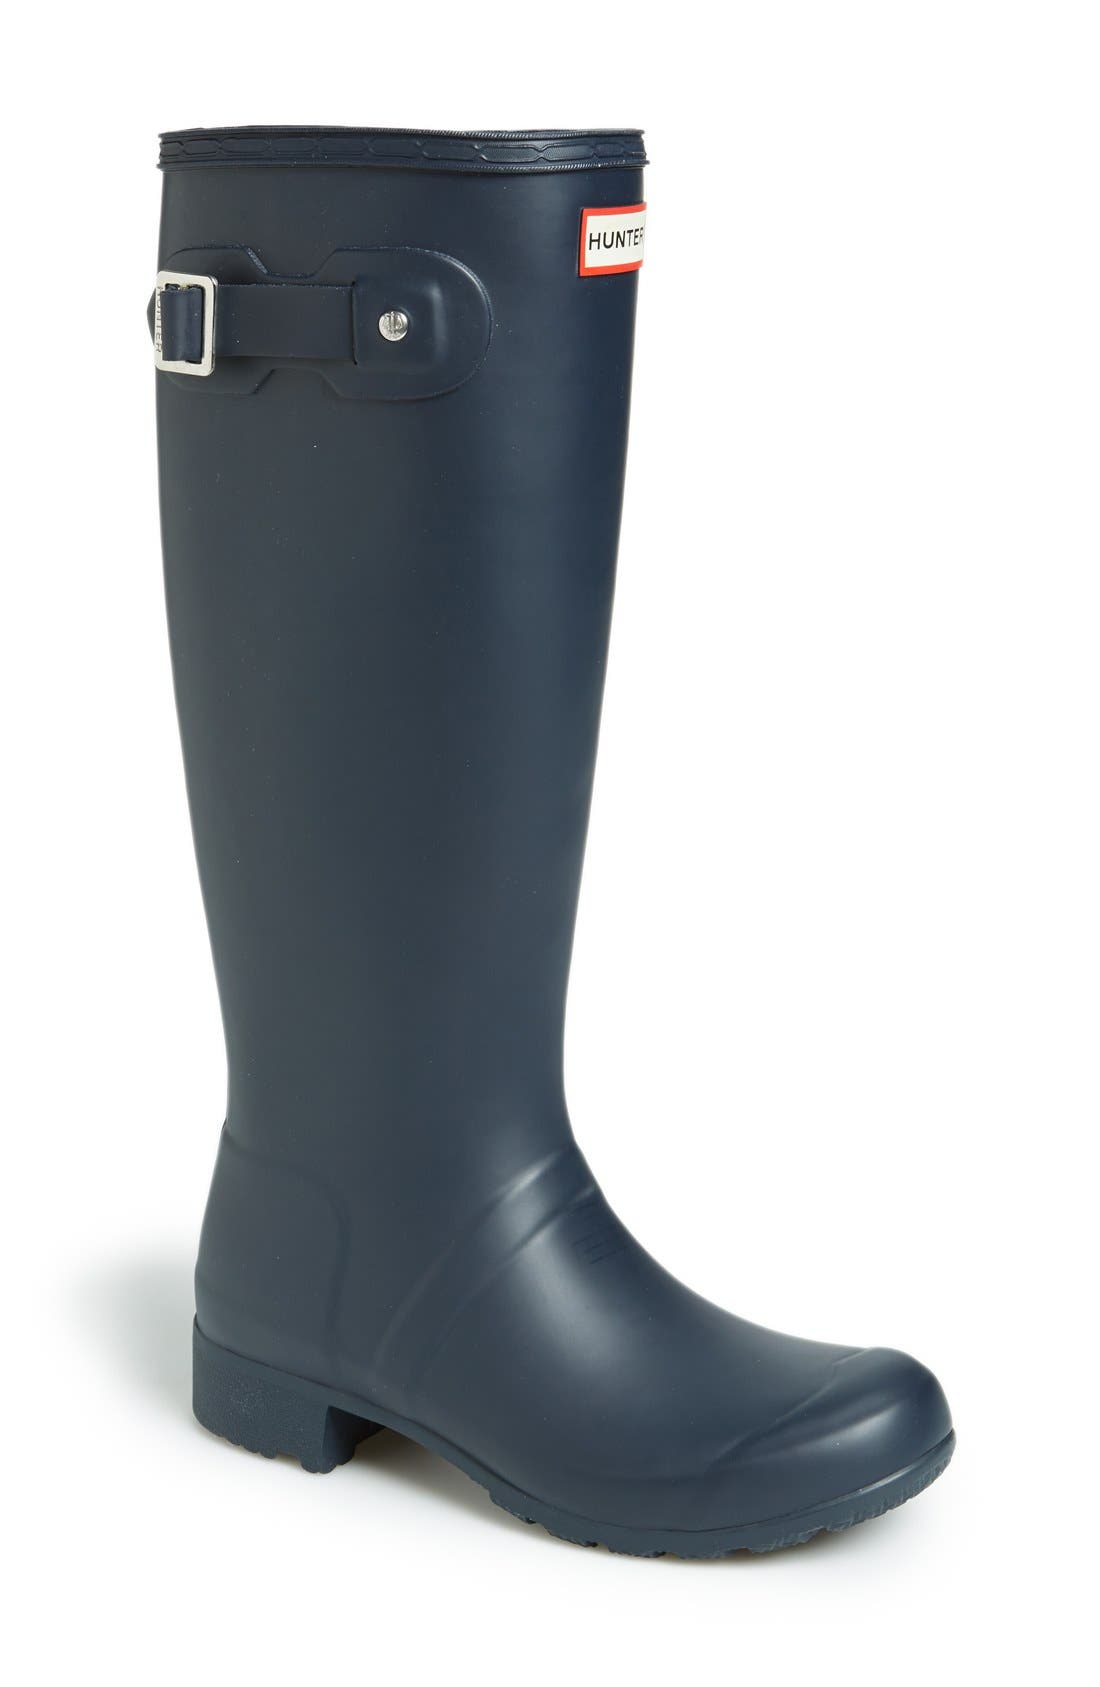 Alternate Image 1 Selected - Hunter 'Tour' Packable Rain Boot (Women)